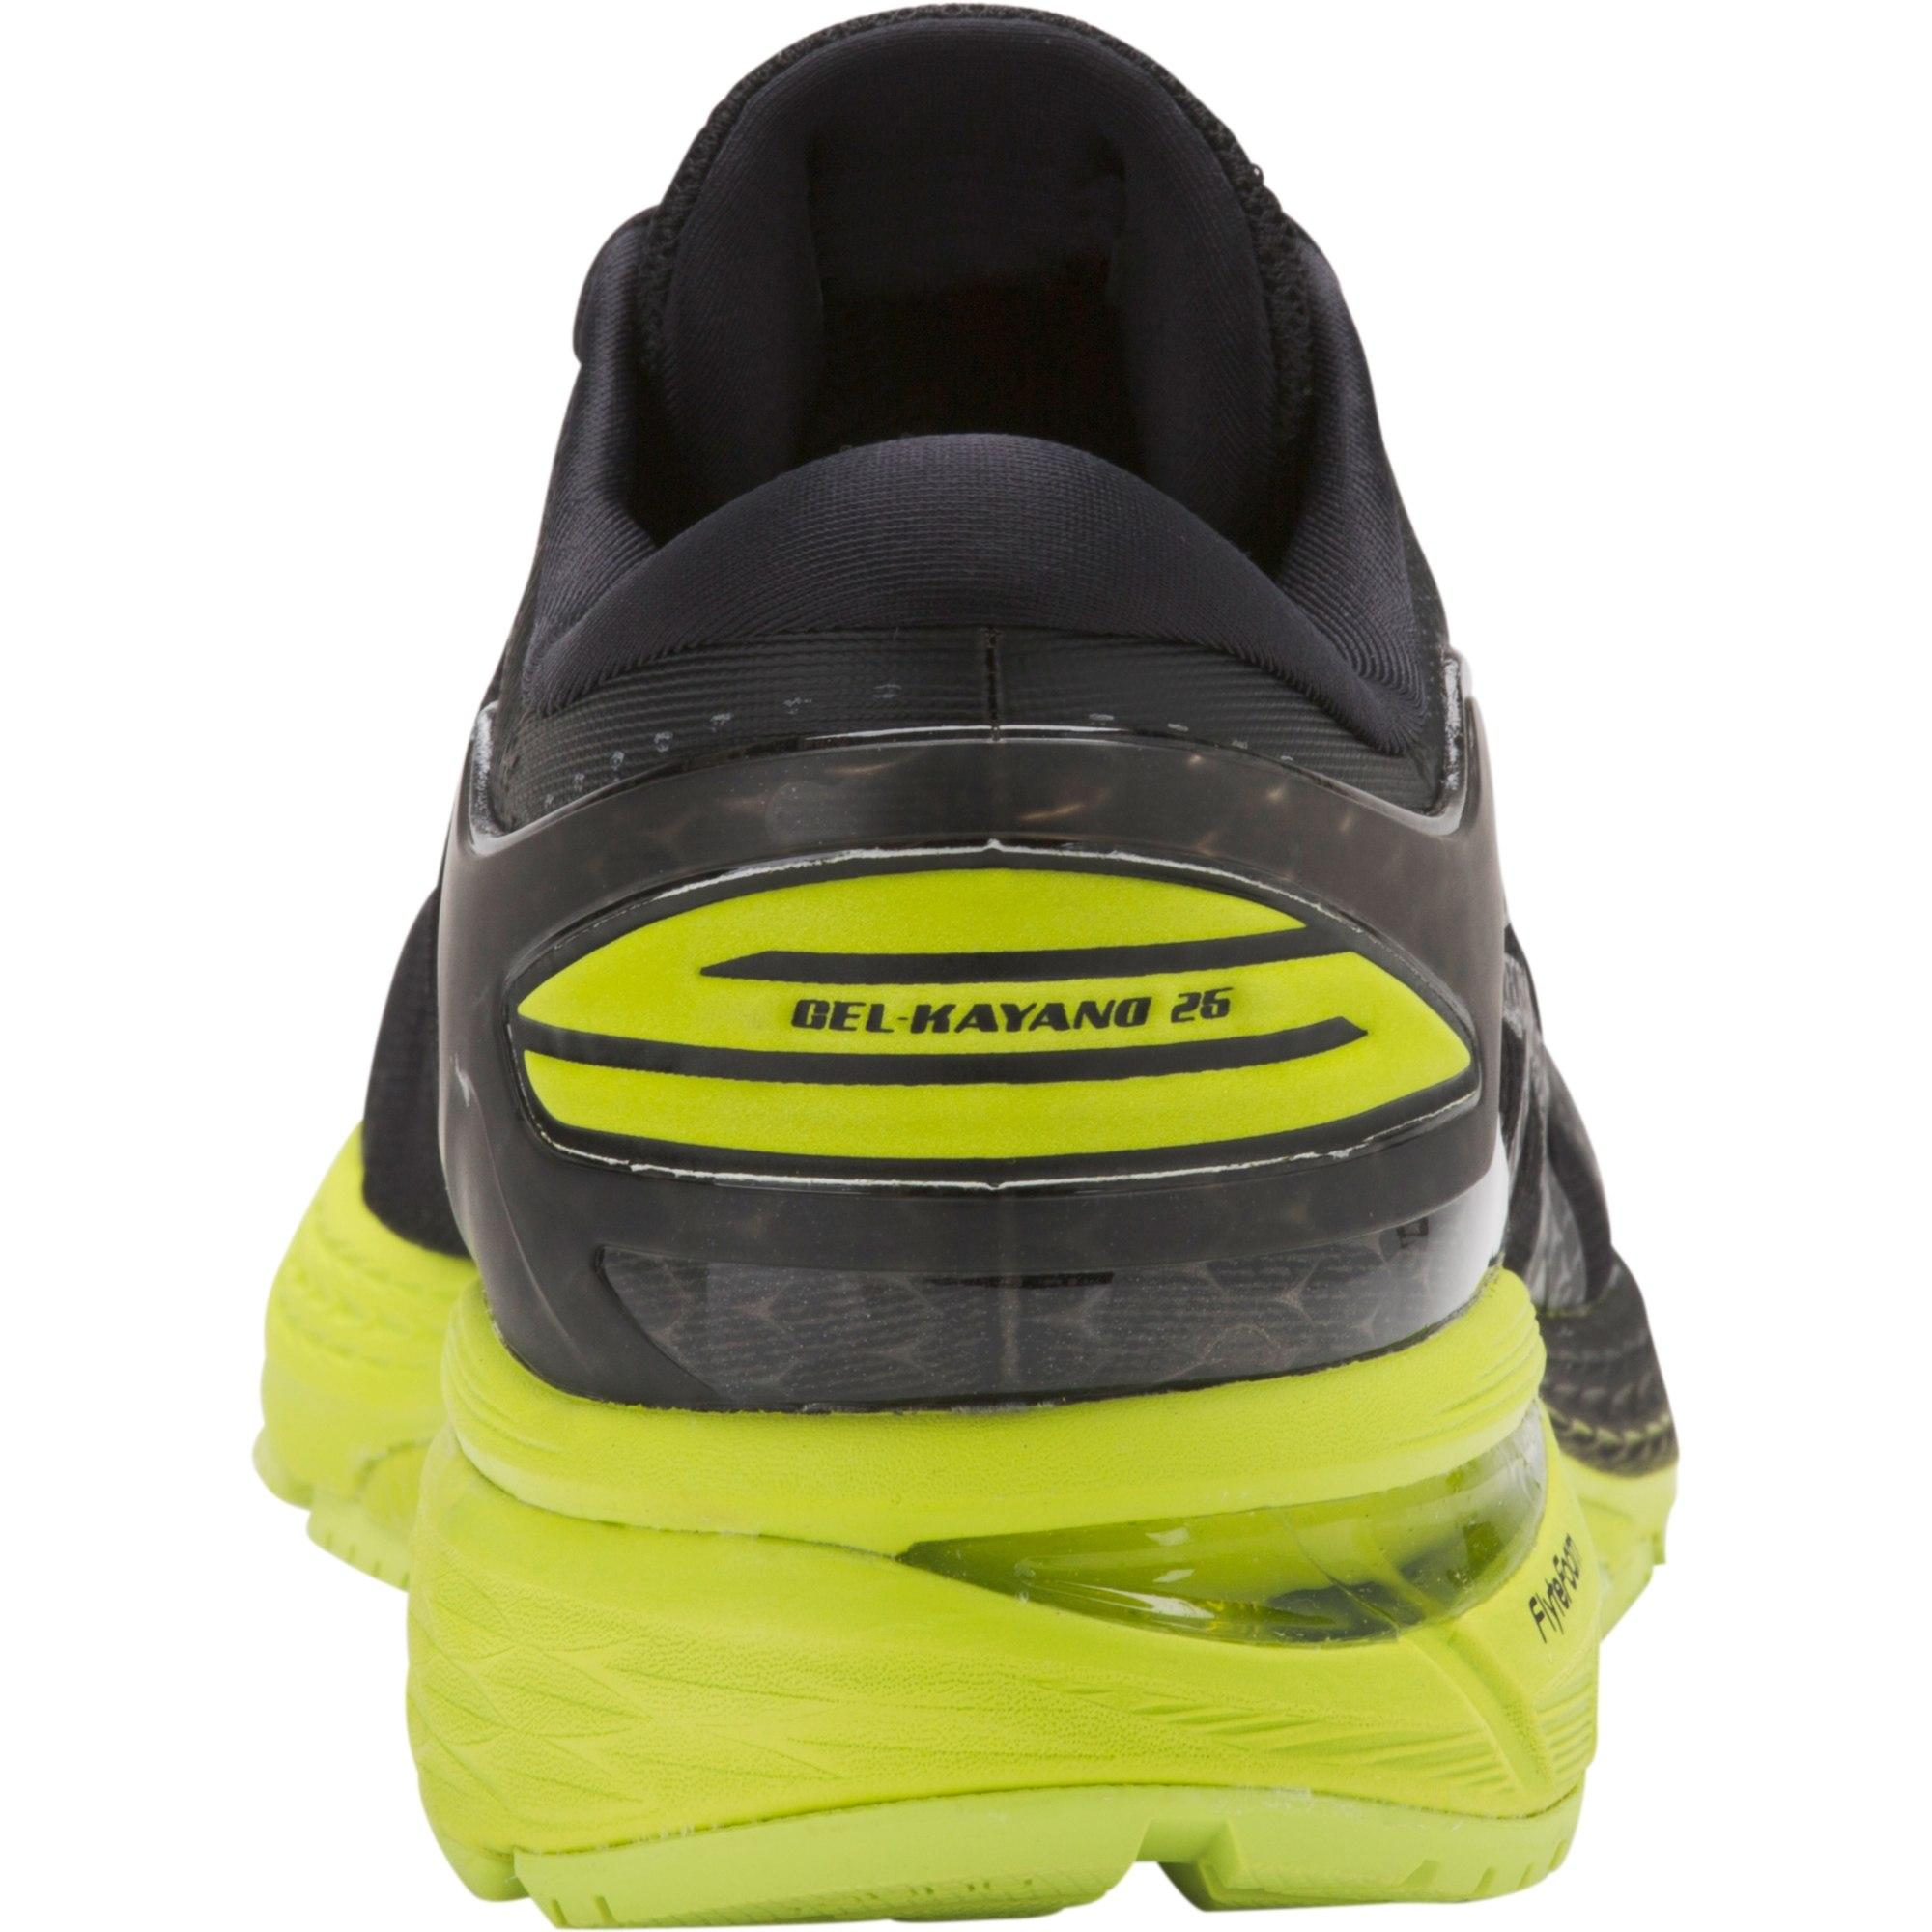 39c97bfd9aff Asics Mens GEL-Kayano 25 Running Shoes - Black Neon Lime ...